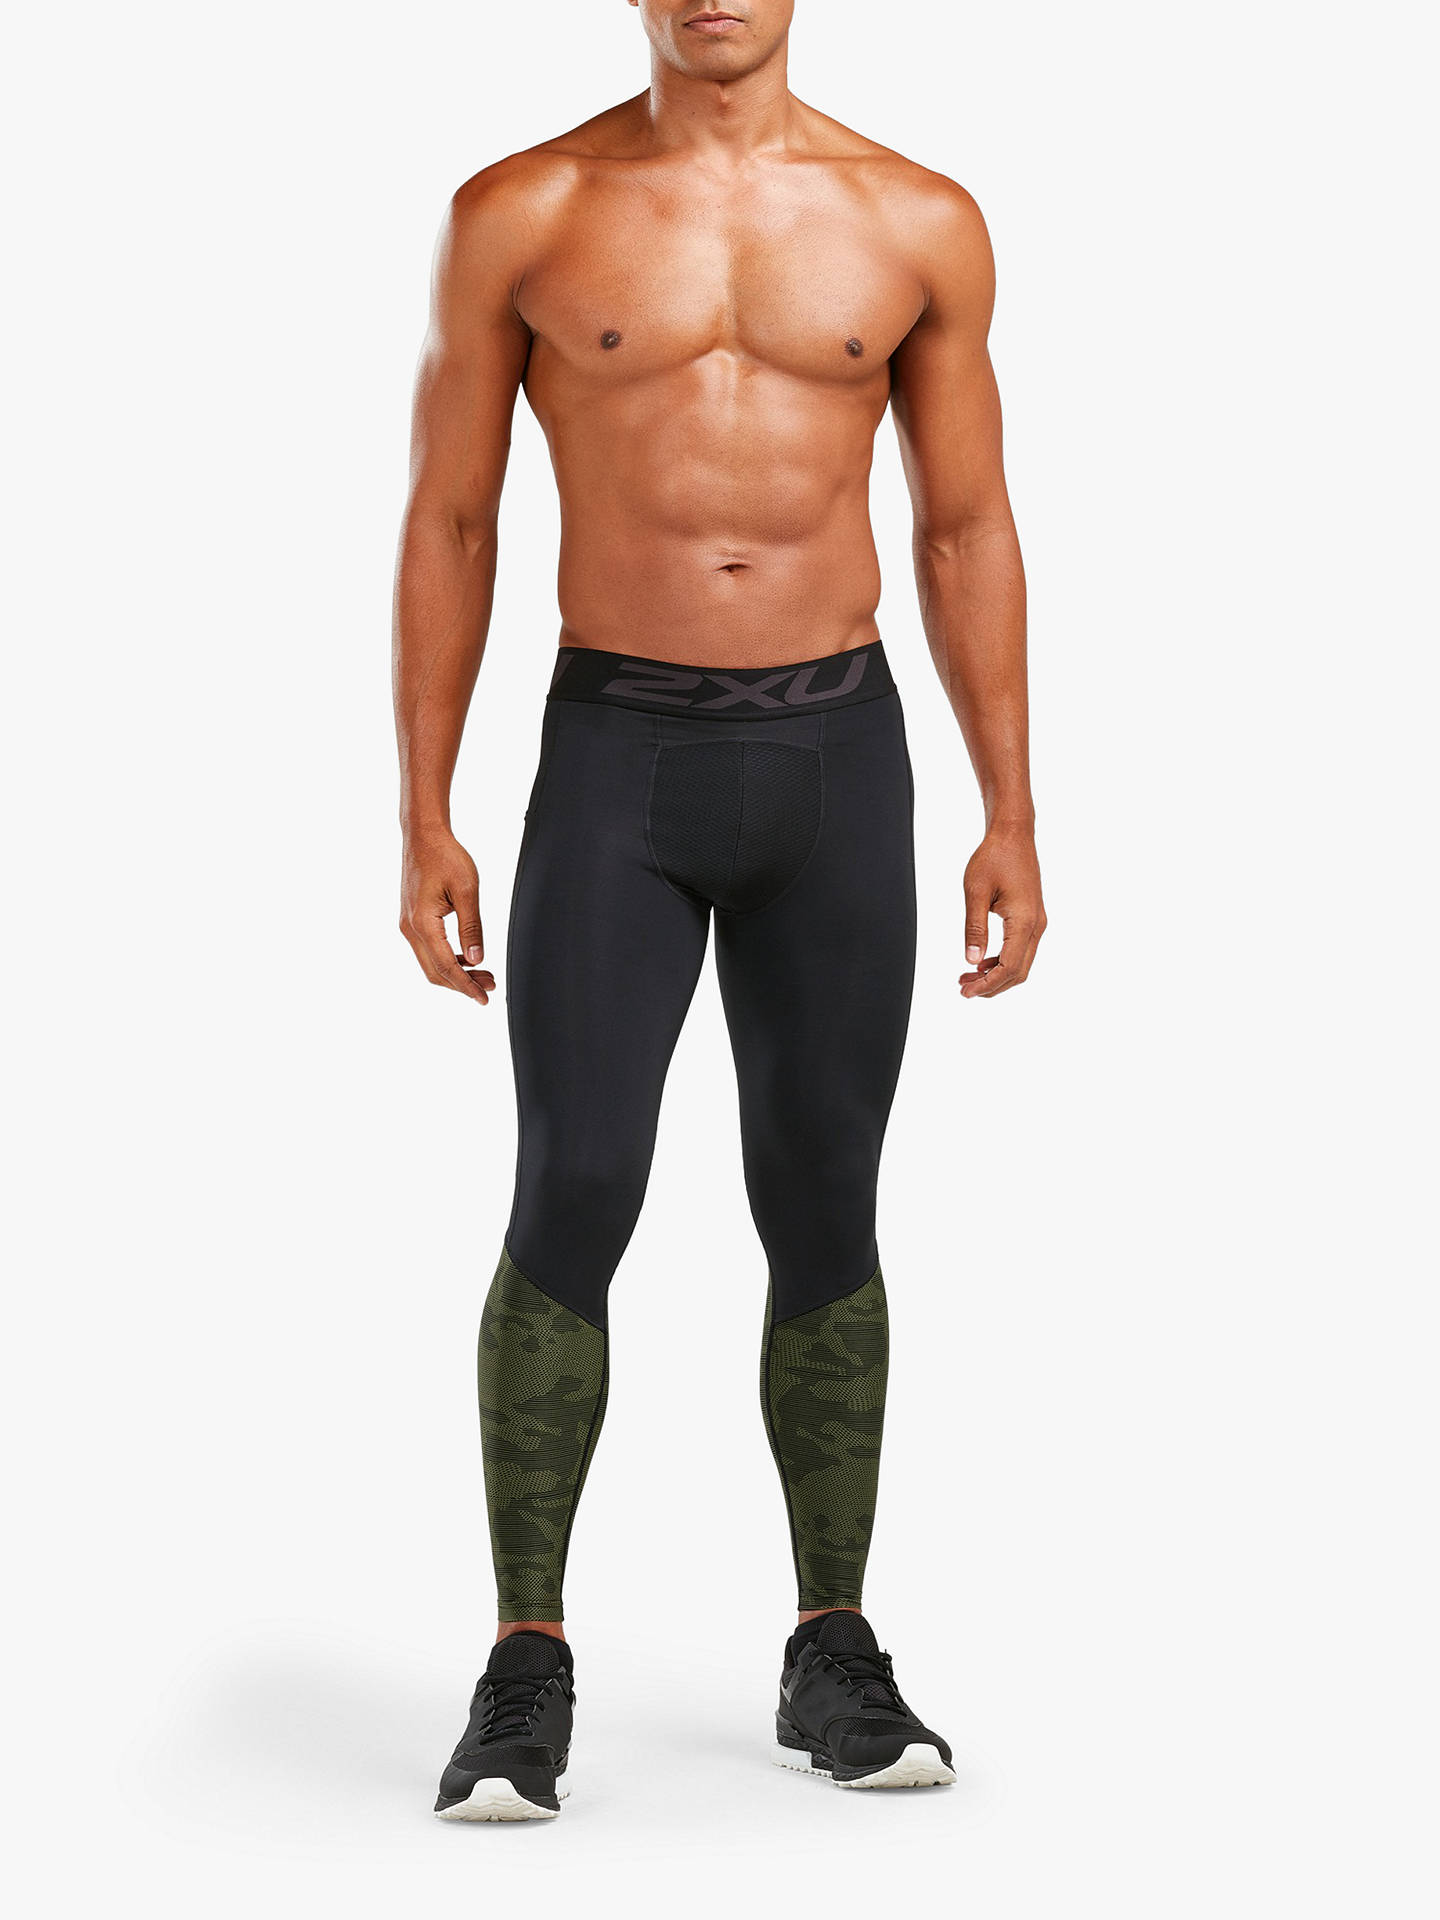 e050a42fb3 Buy 2XU Thermal Accelerate Compression Tights, Black/Khaki, S Online at  johnlewis.